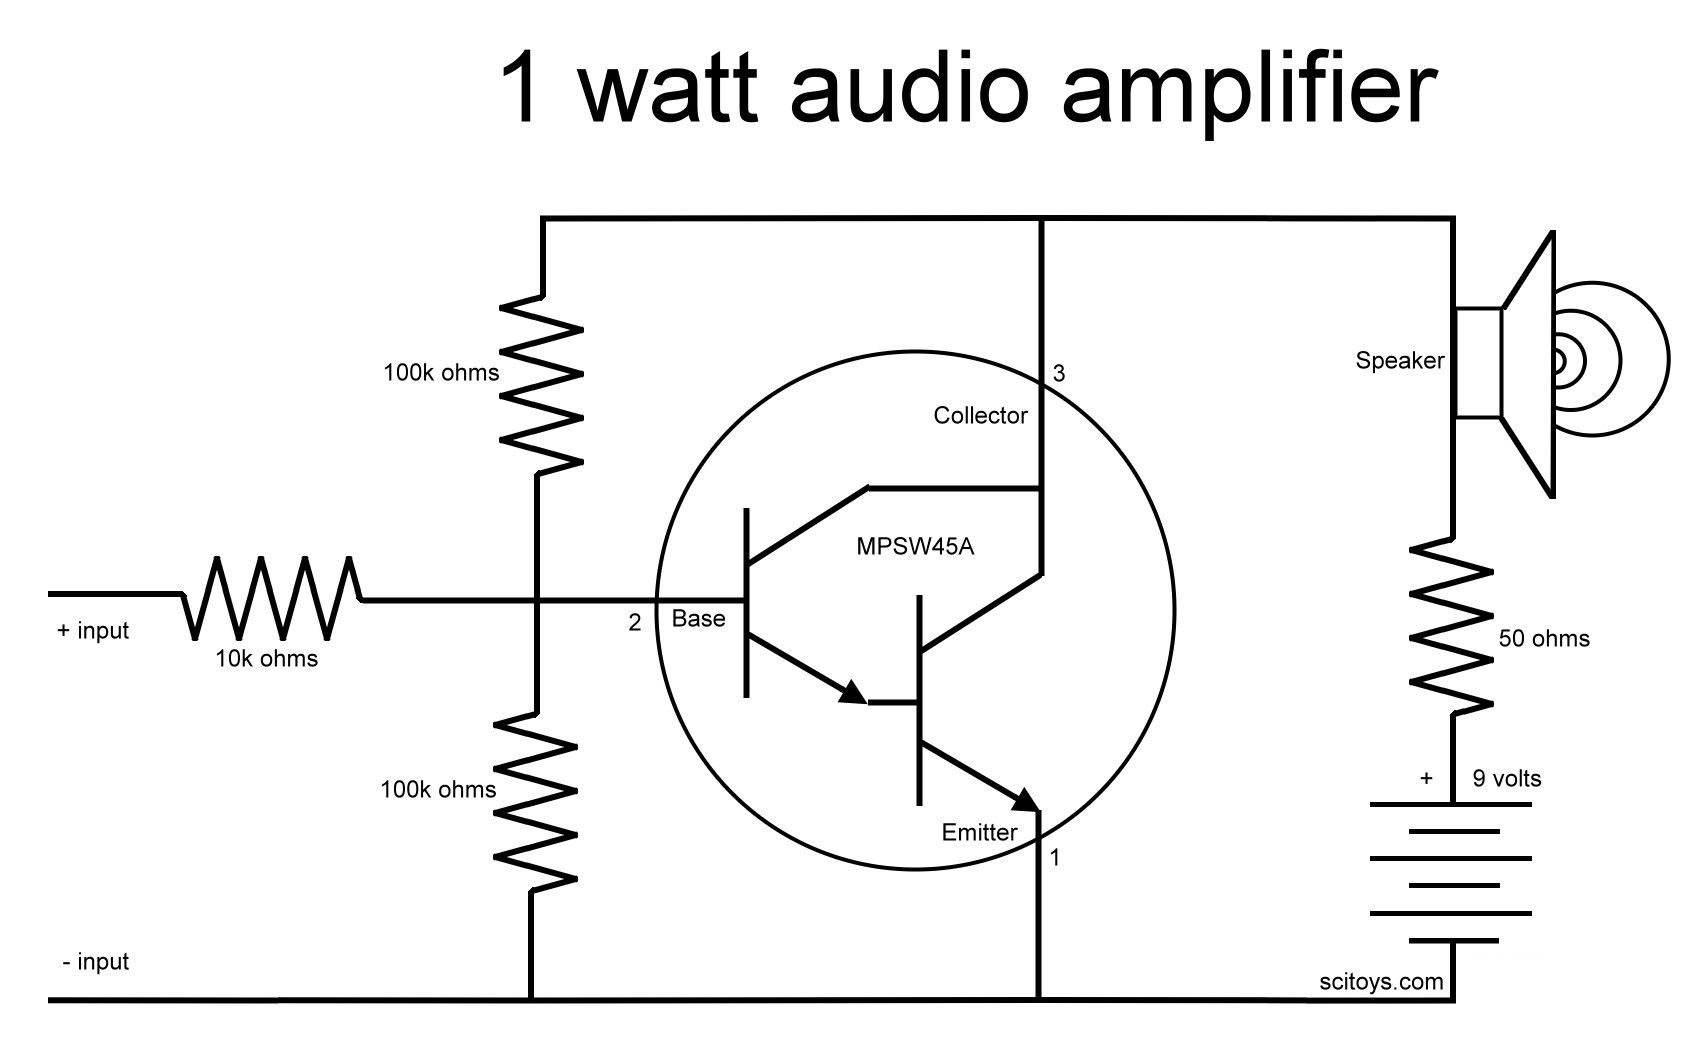 Watt audio #amplifier #Electrical #Electronics